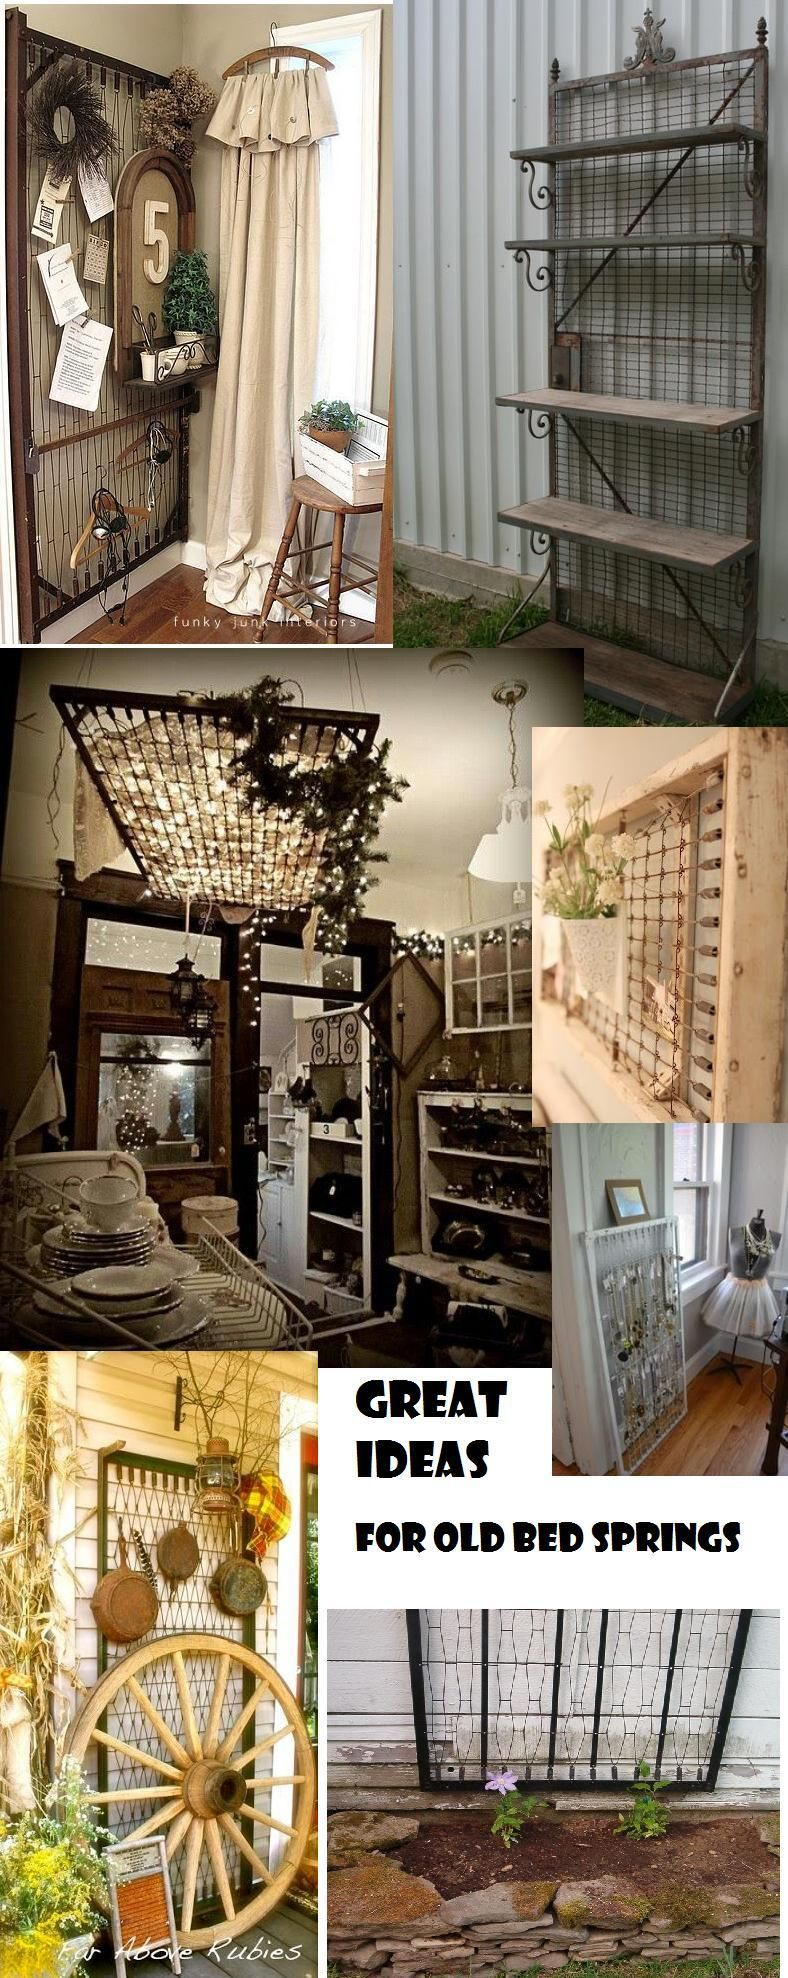 Great Ideas for Old Bed Springs Spring bed frame, Box